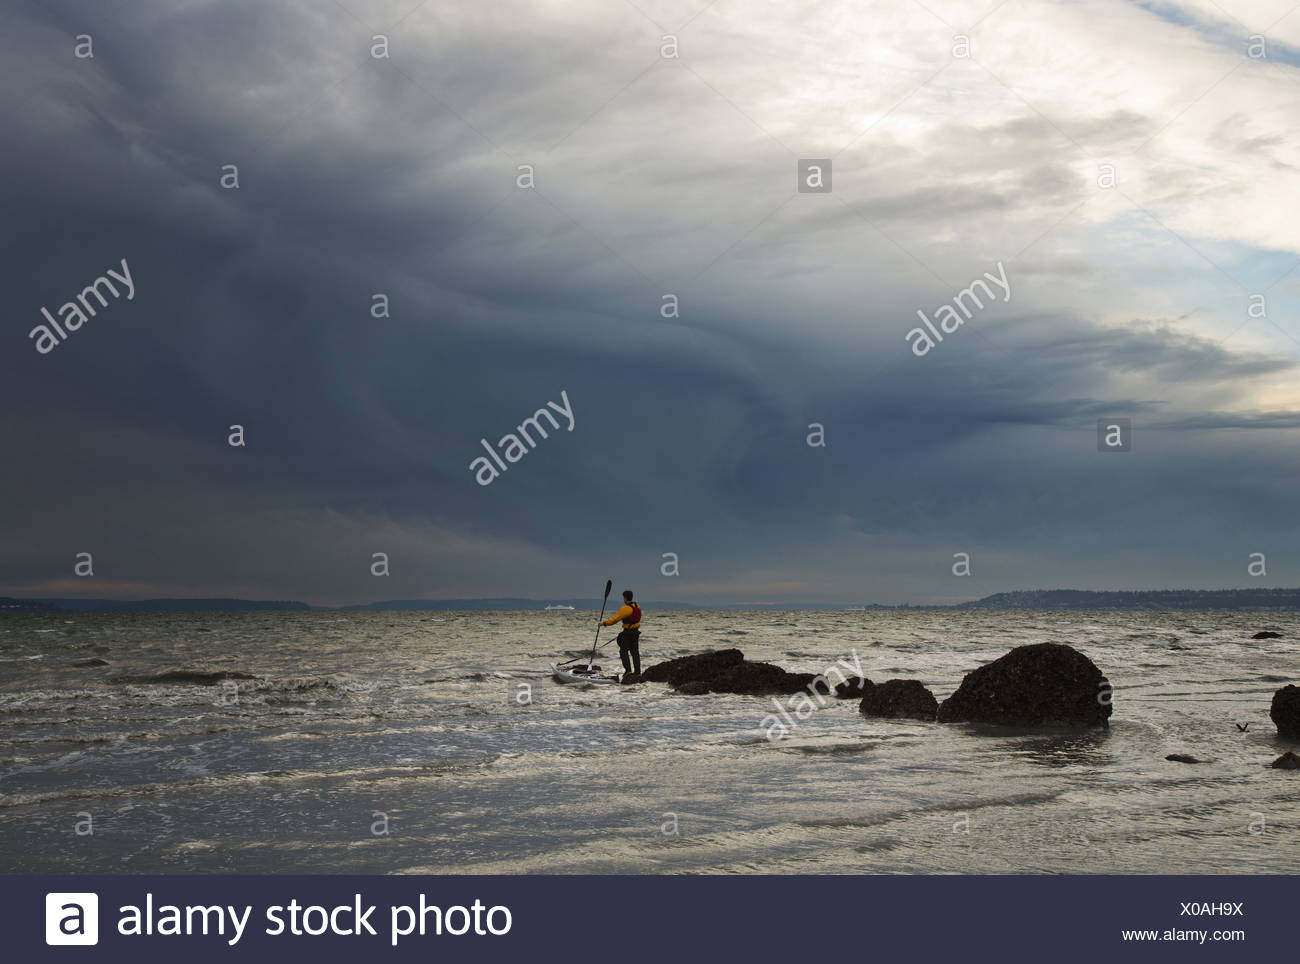 A man stands on a rock in the middle of the Puget Sound with his sea kayak floating next to him - Stock Image